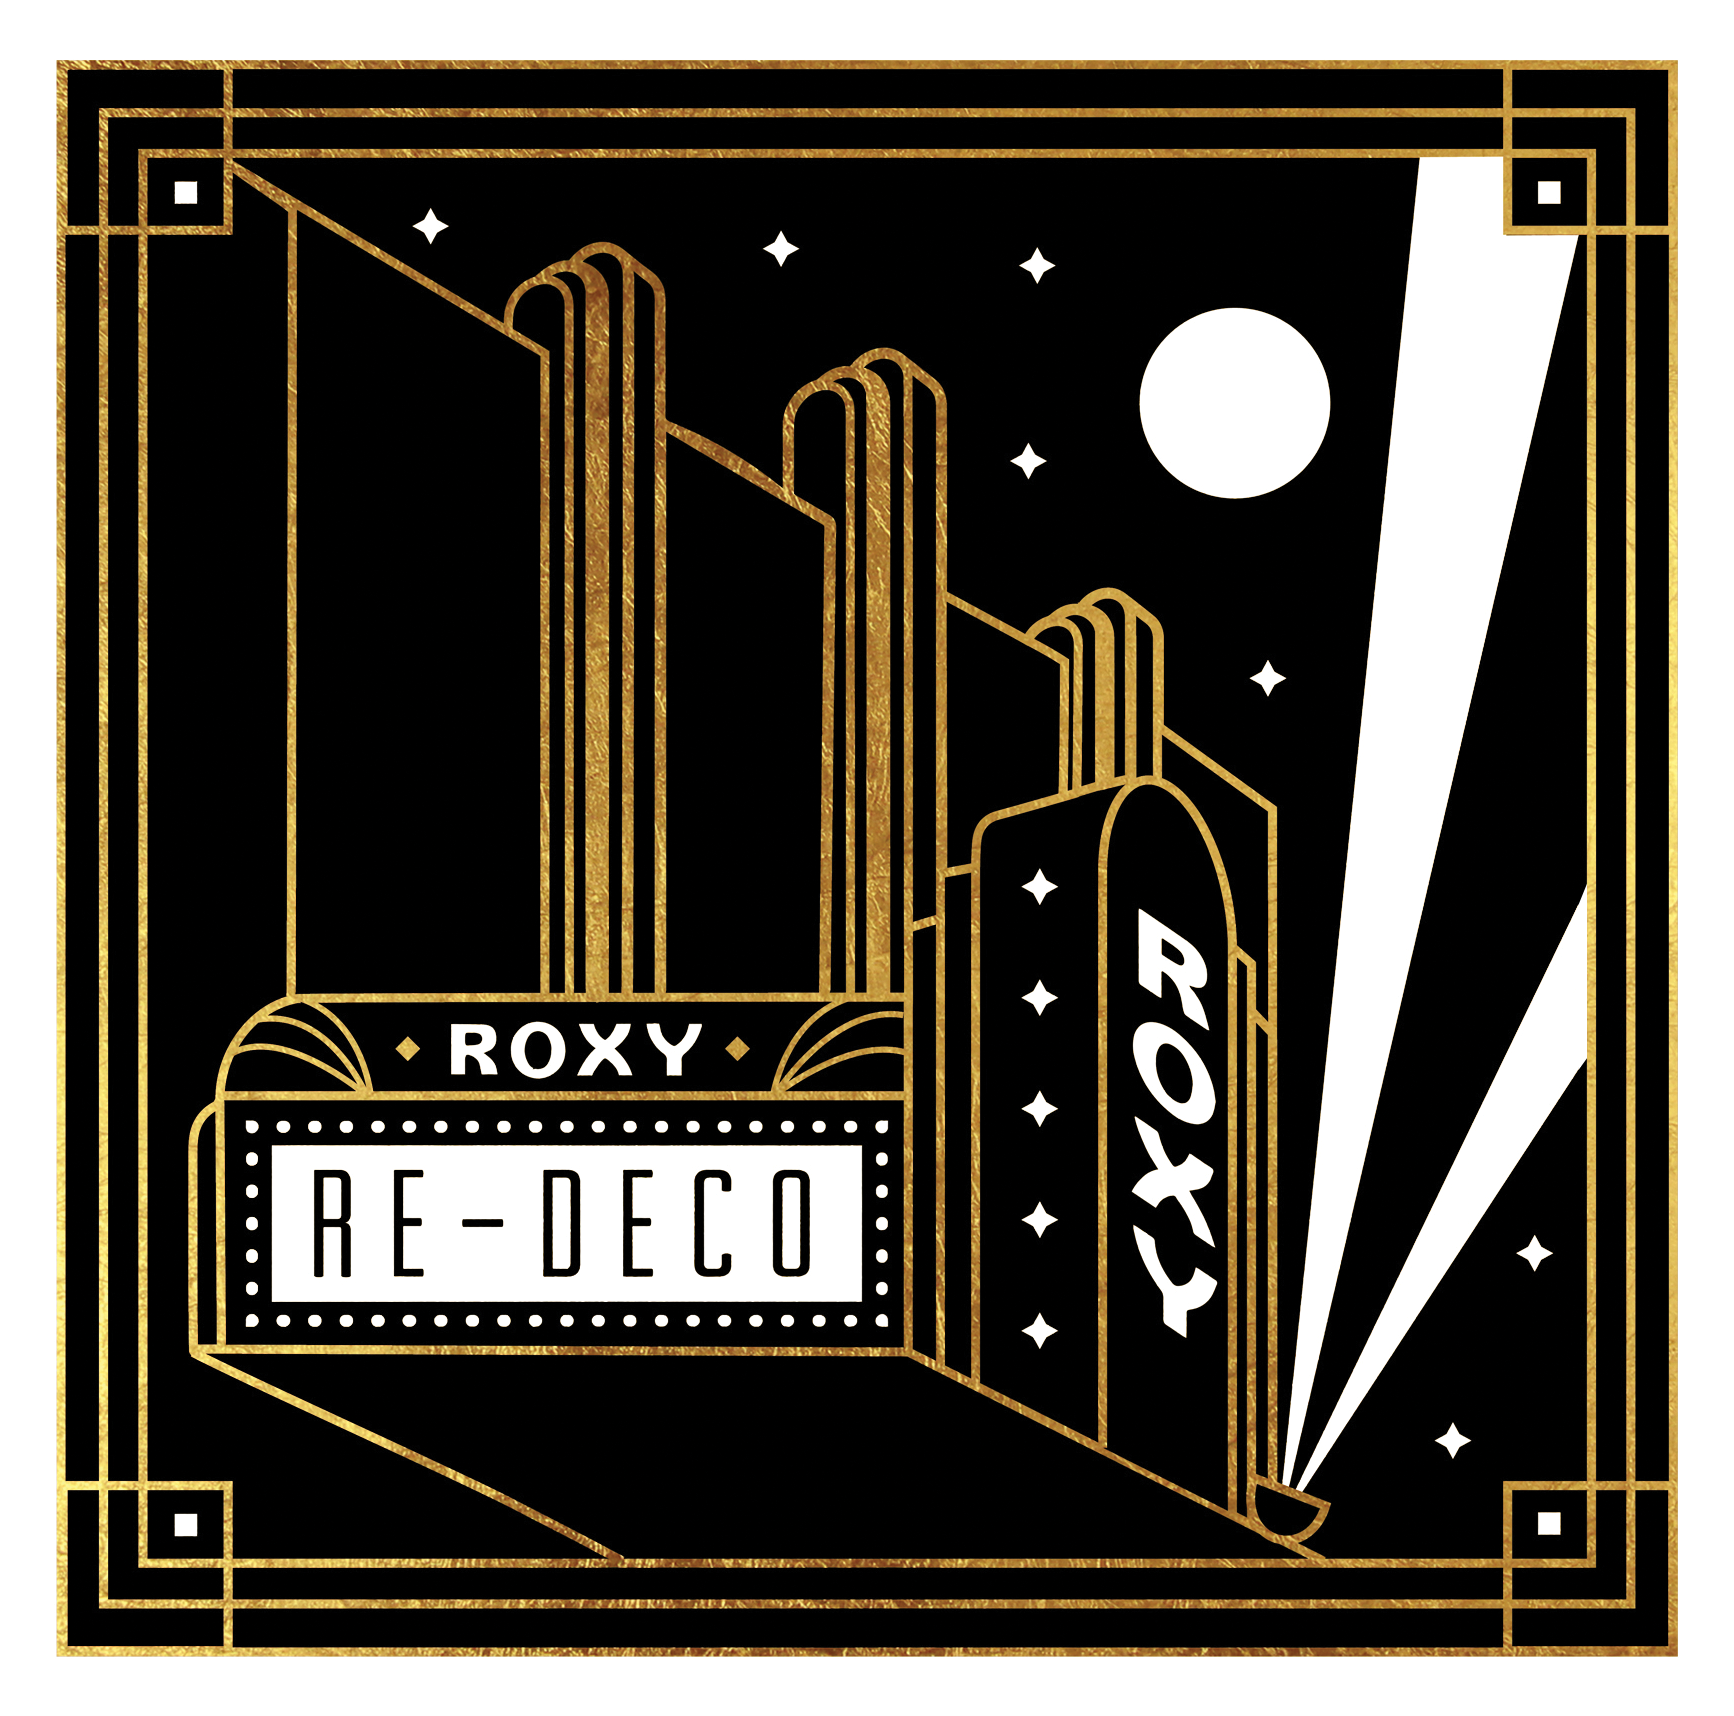 Roxy Re-Deco Branding